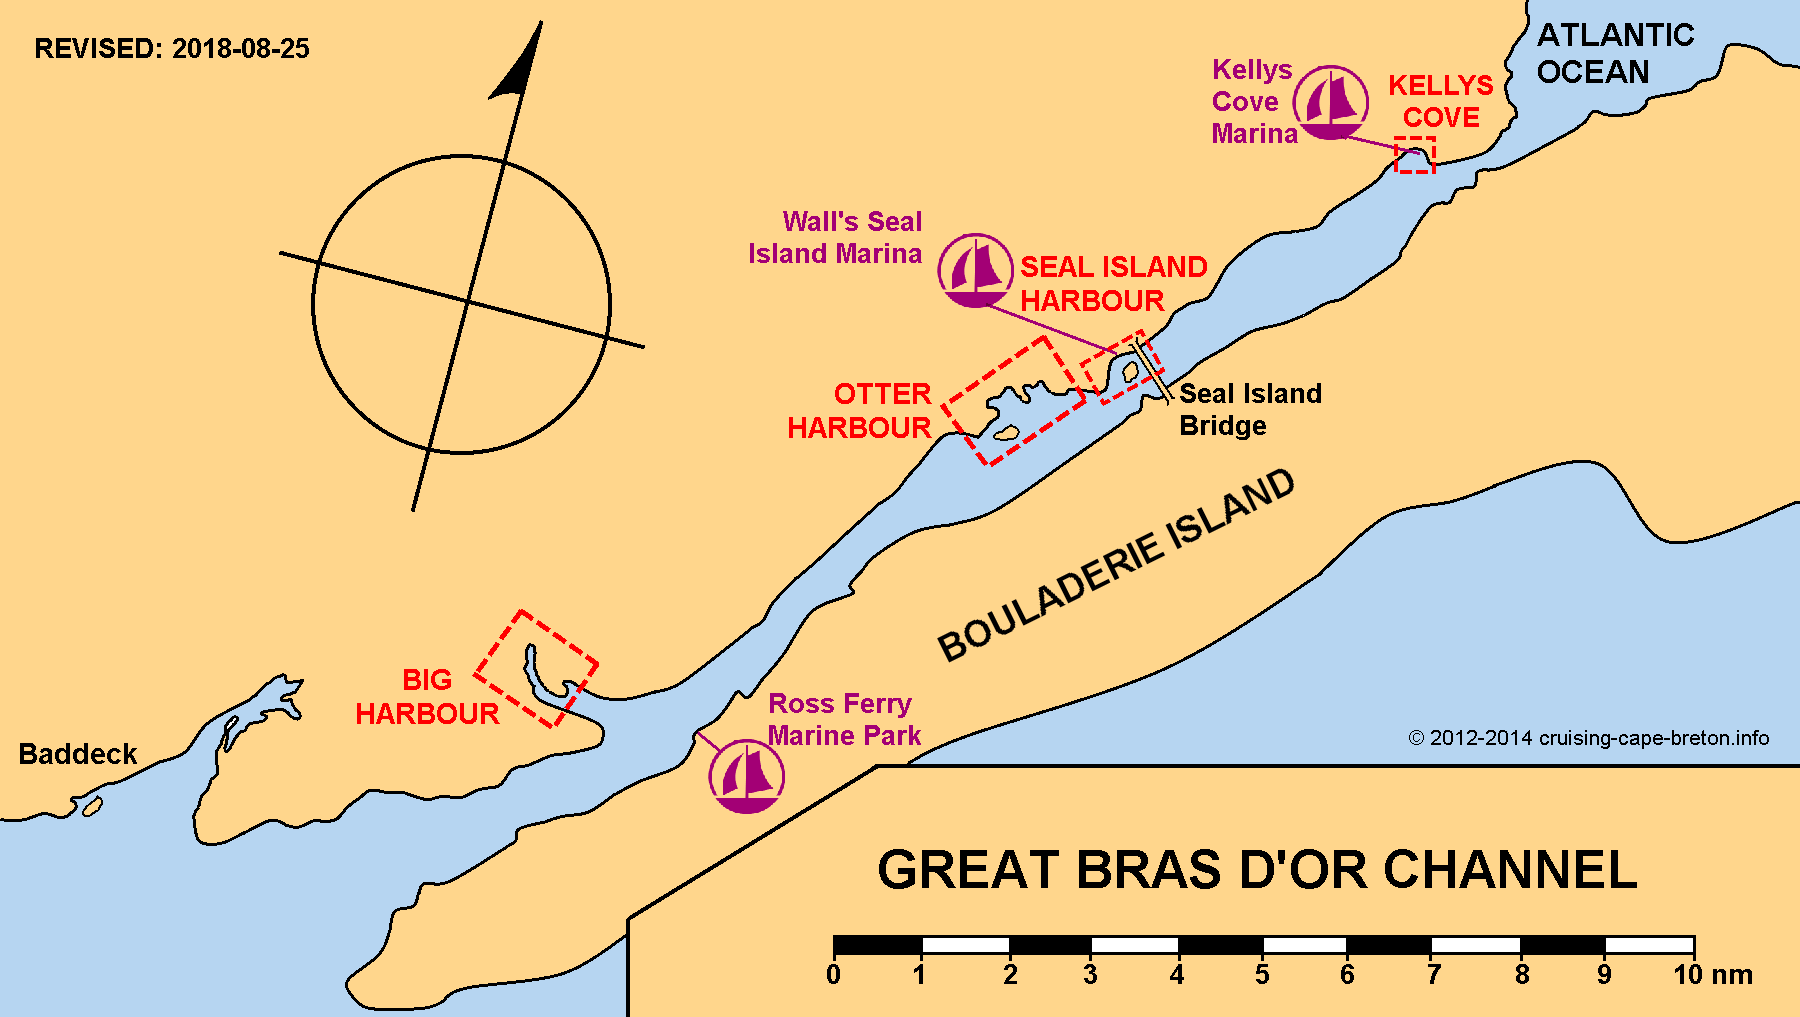 Key Chart to Great Bras d'Or Channel